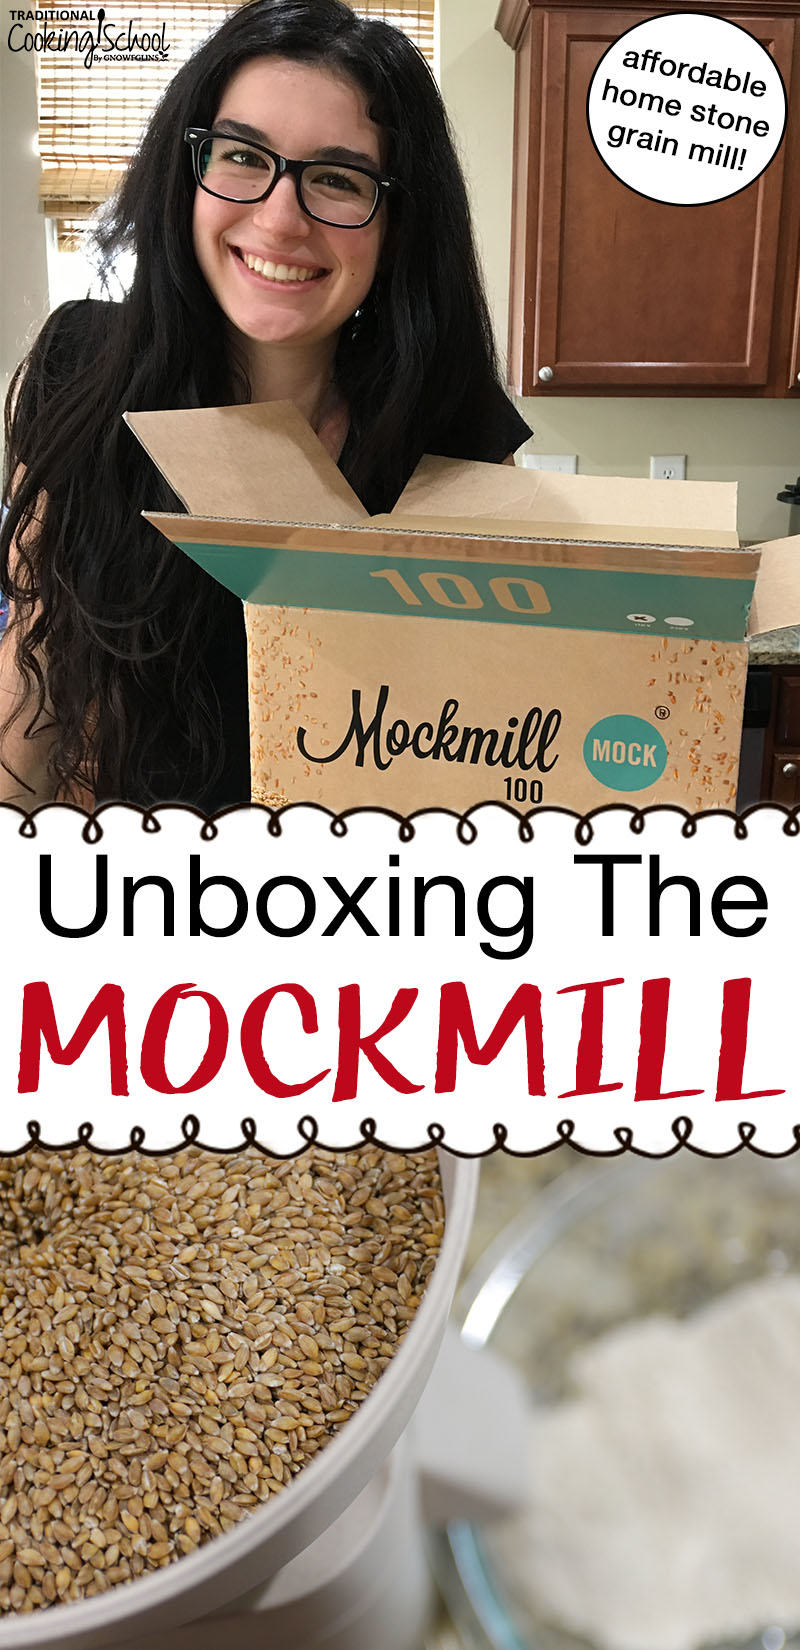 "photo collage of brunette smiling next to an open box with home stone grain mill inside, then next photo shows the grain mill grinding einkorn berries, with text overlay: ""Unboxing The Mockmill"""